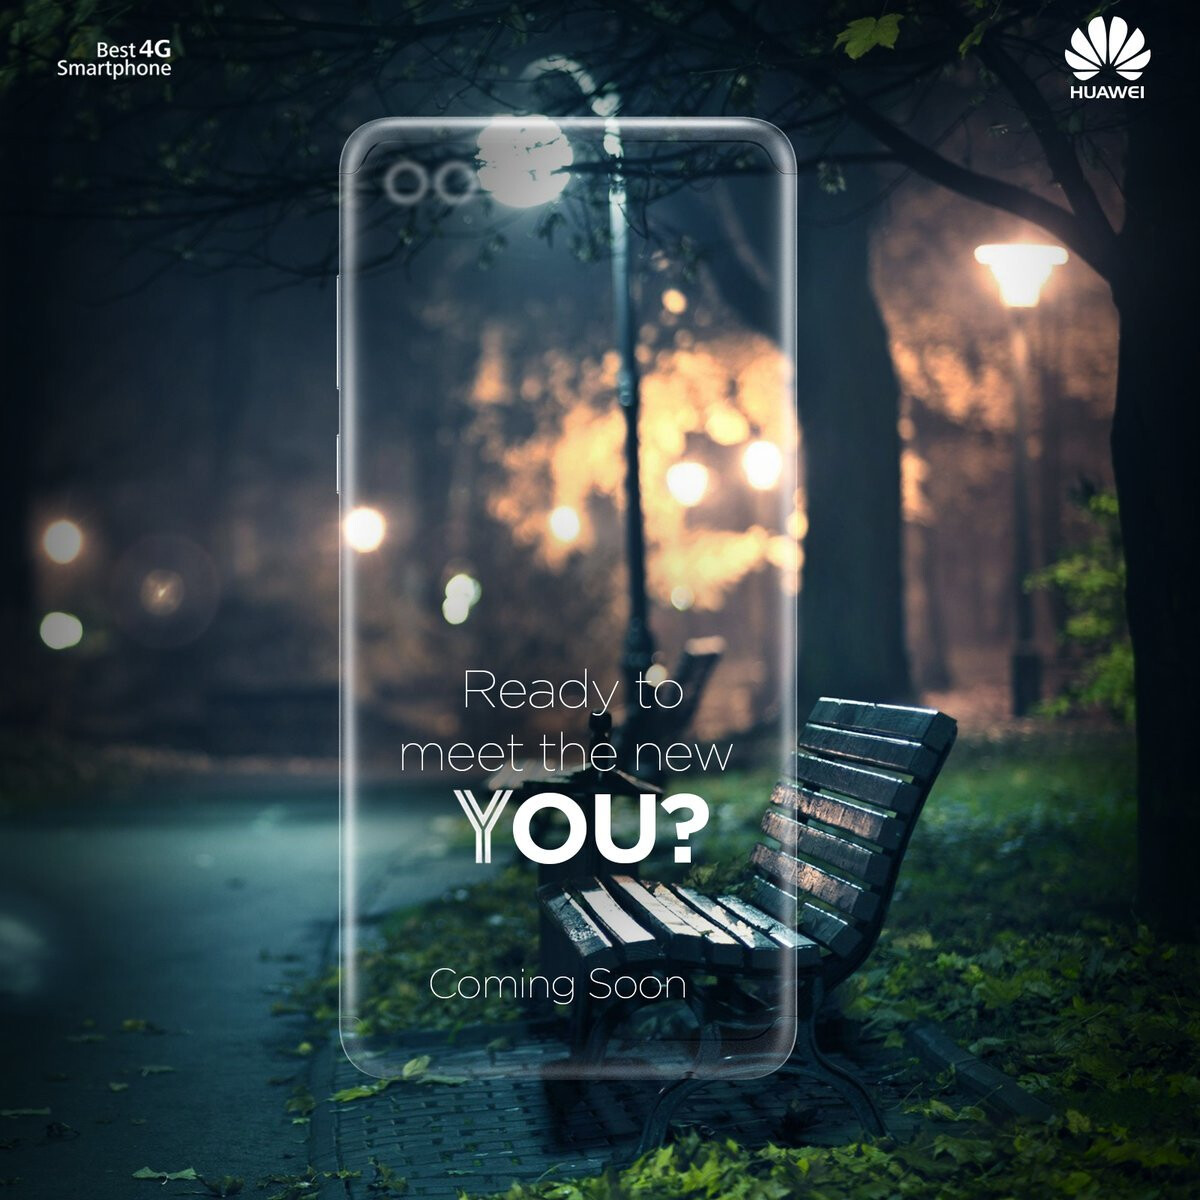 Teaser for the Huawei Y9